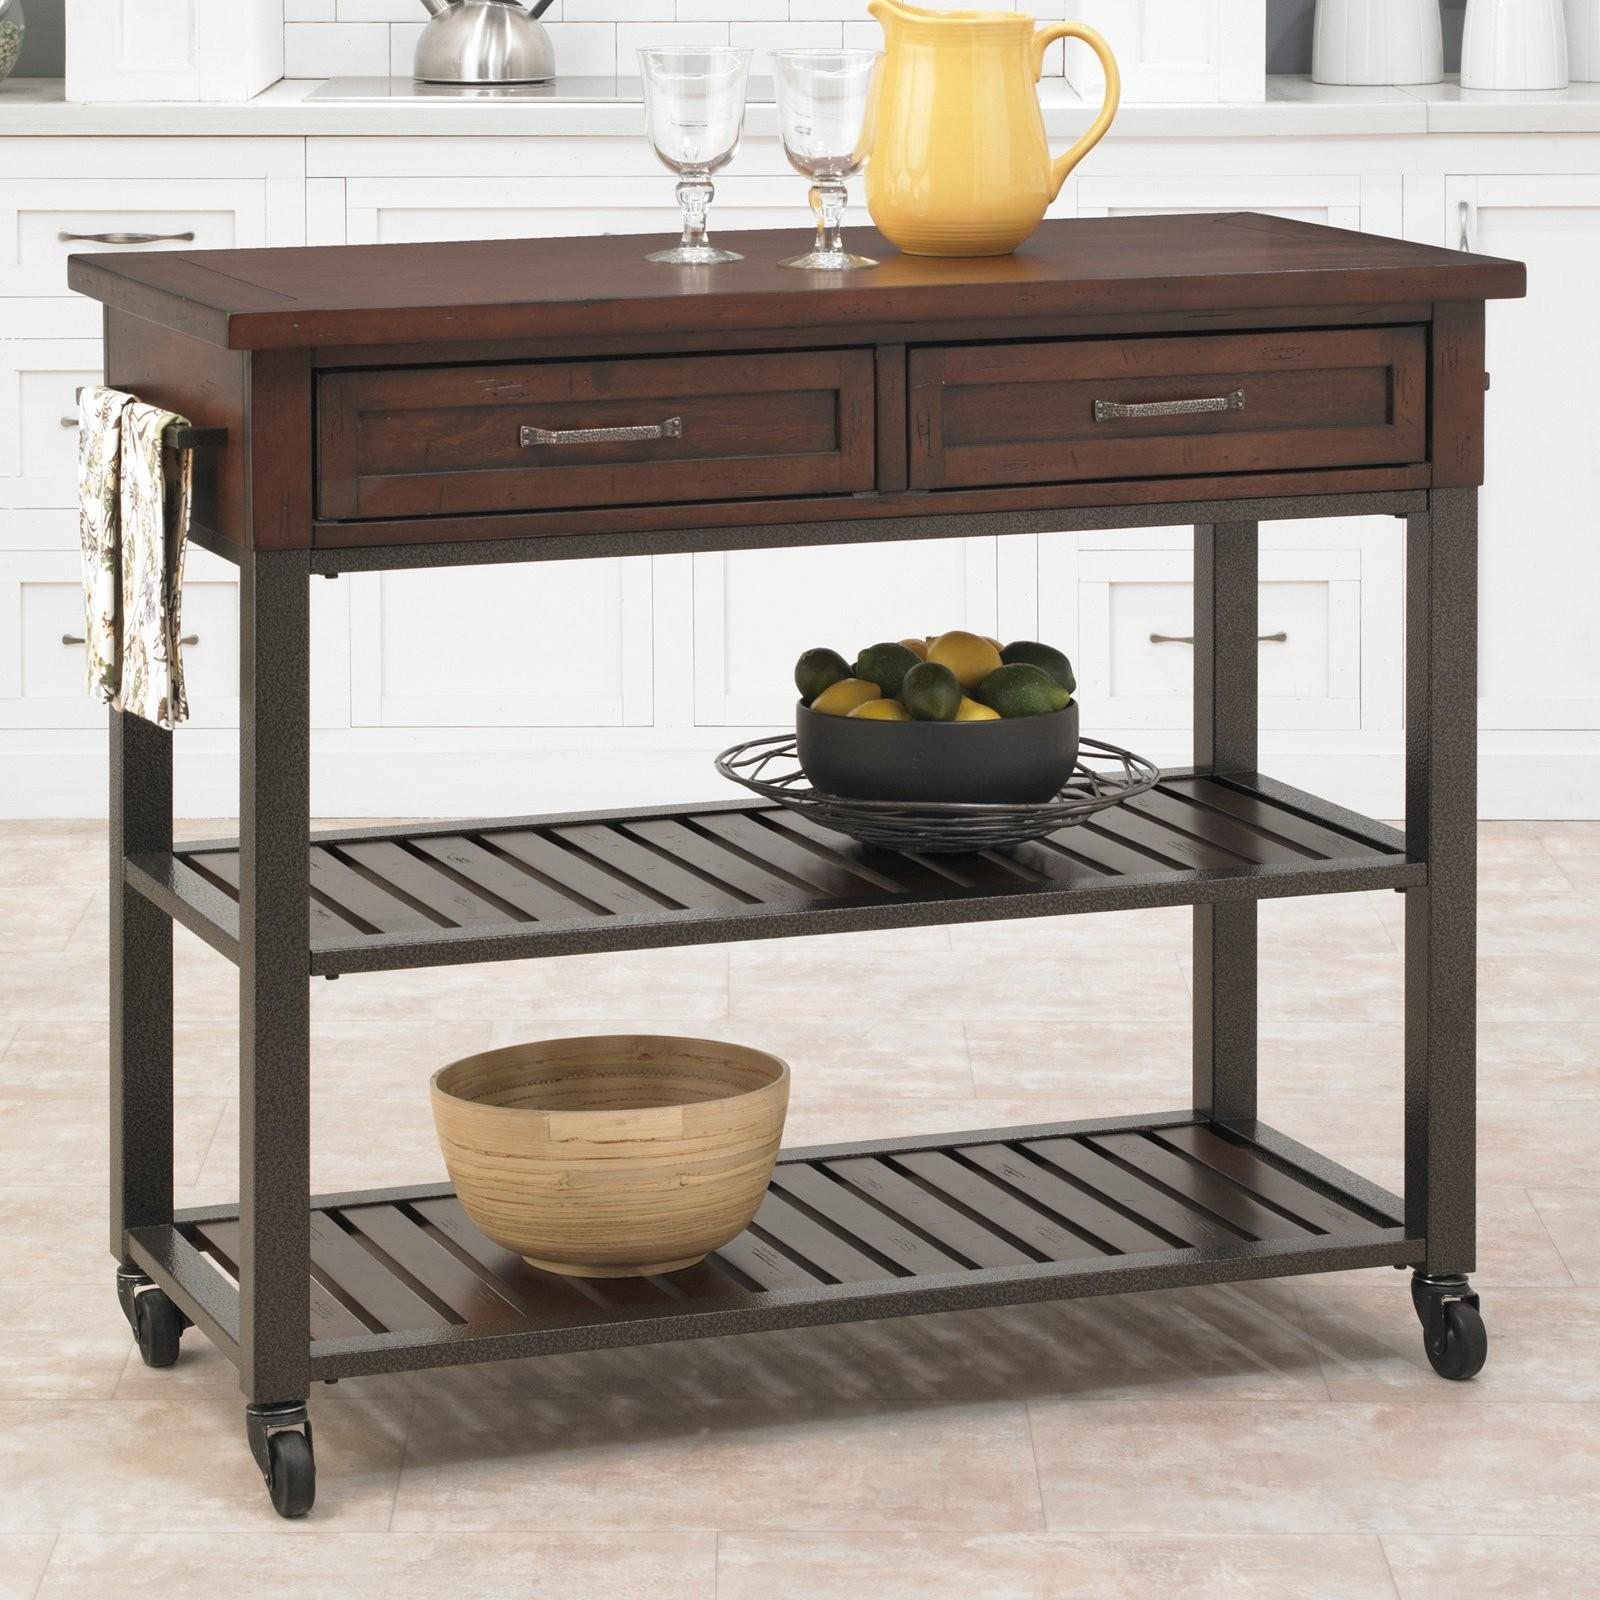 Home Styles Cabin Creek Drawer Open Shelf Kitchen Cart